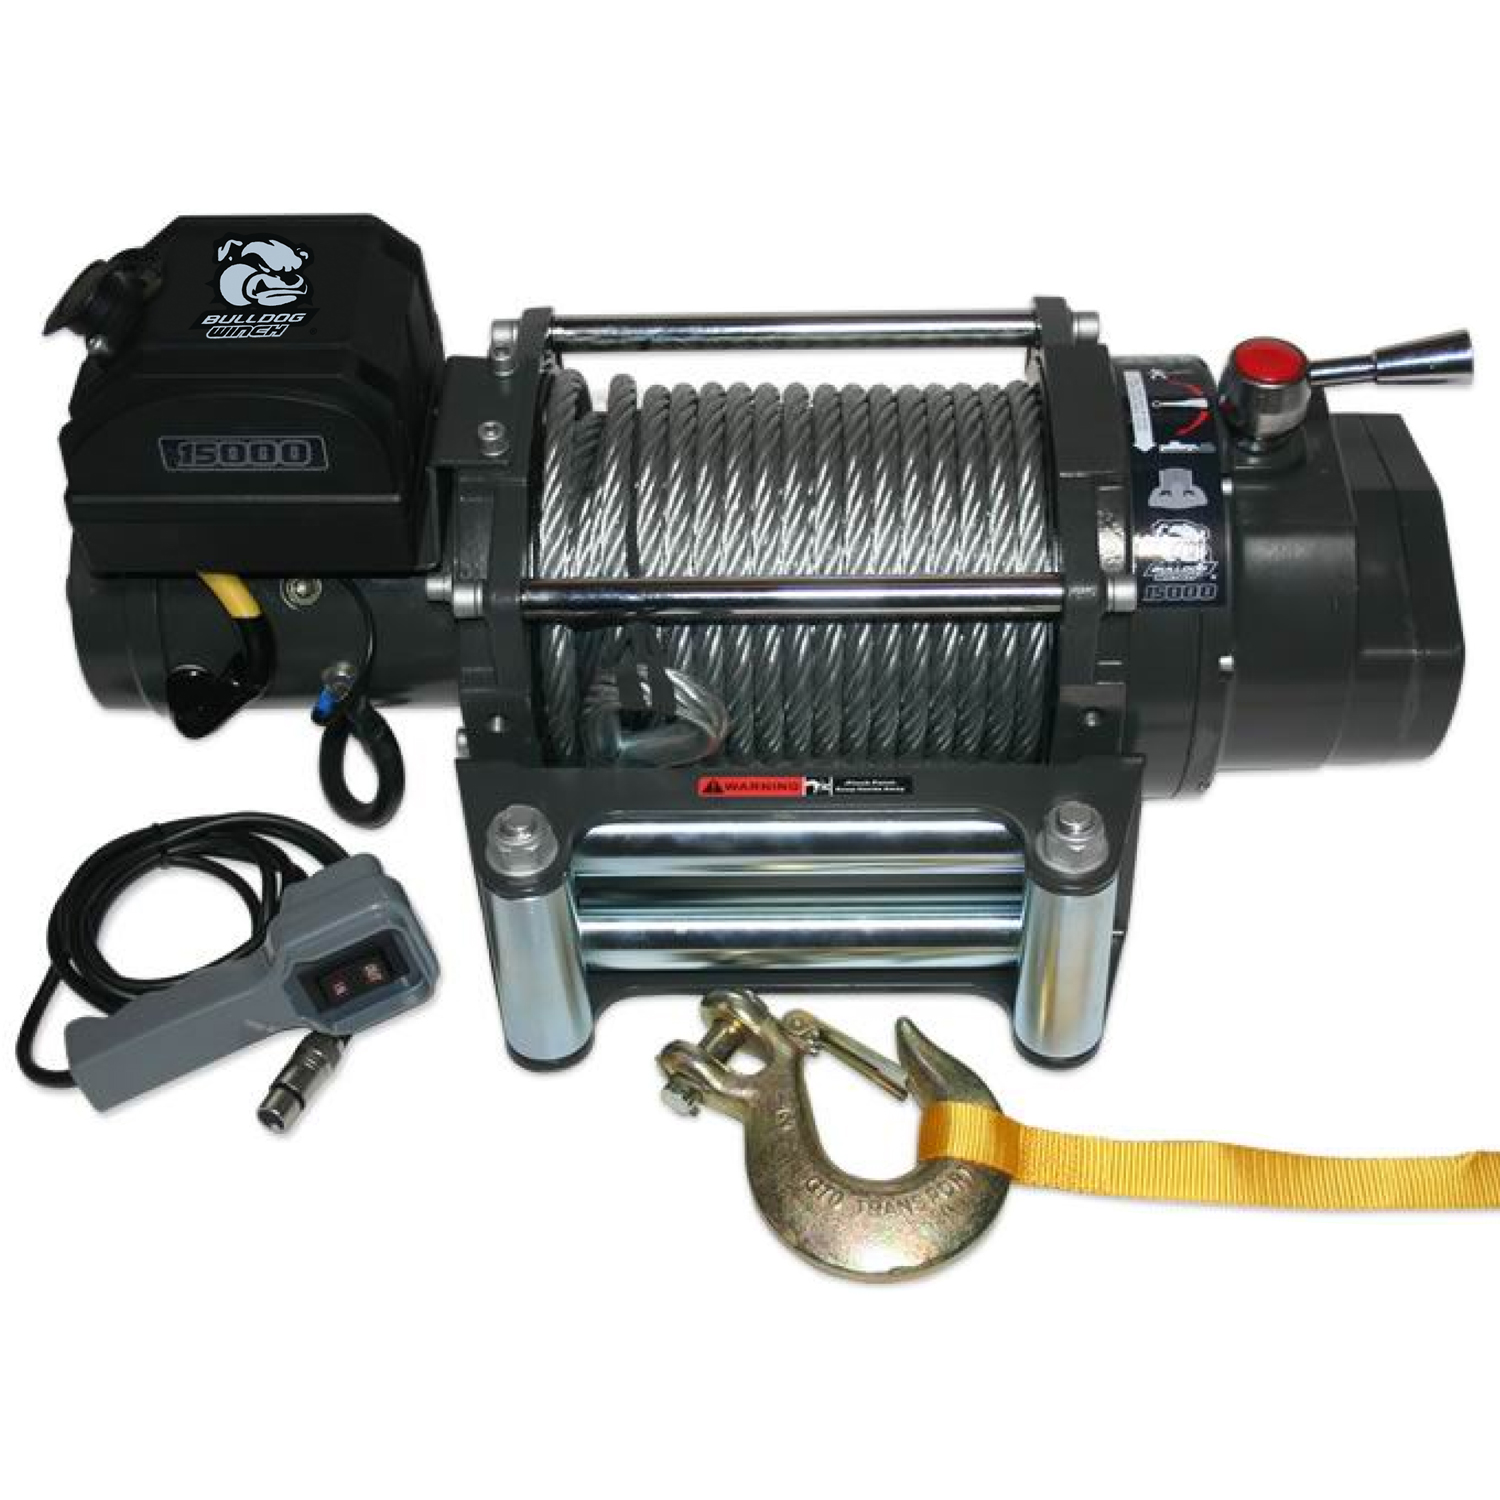 Bulldog Winch 15000 LB HD Truck Winch